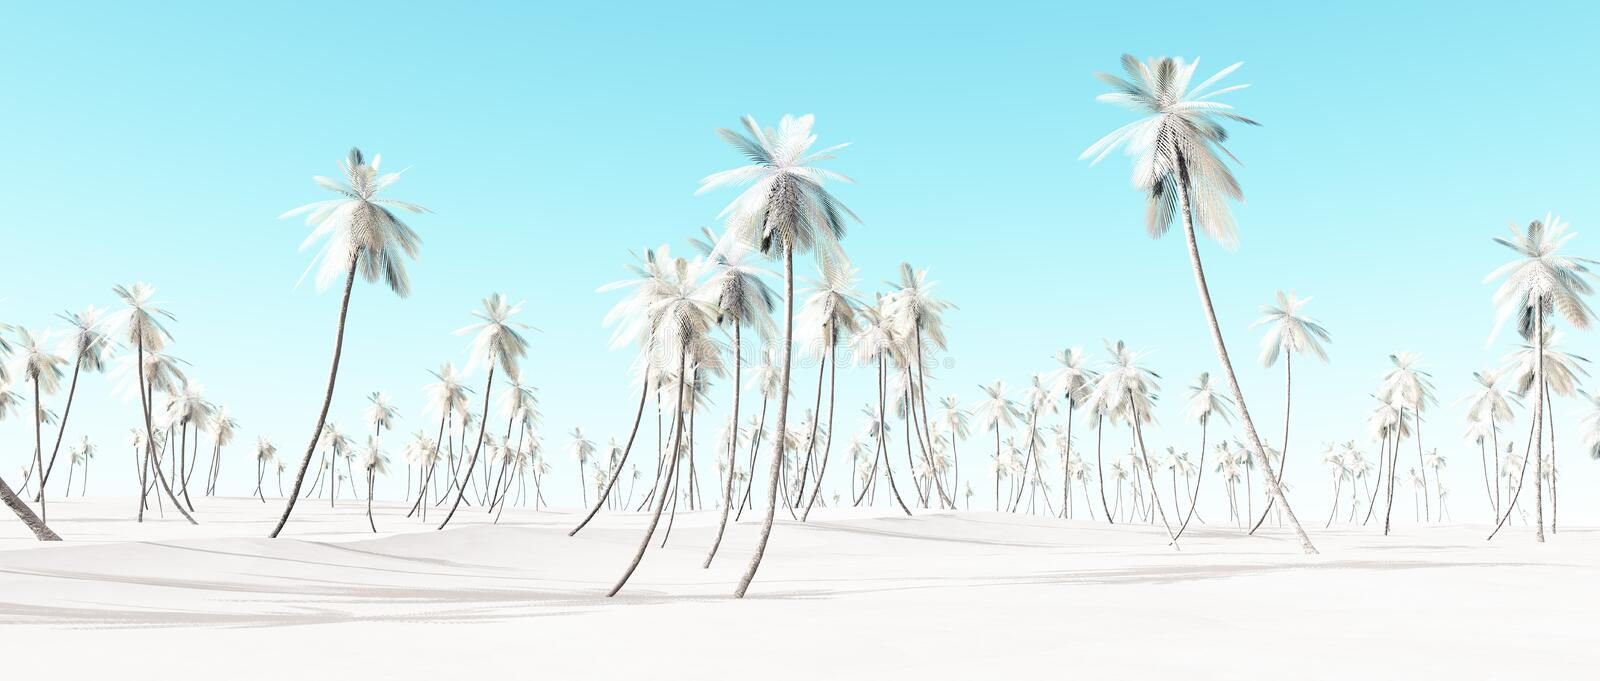 Winter snow white palm beach landscape. Winter snow white palm beach landscape with blue sky vector illustration